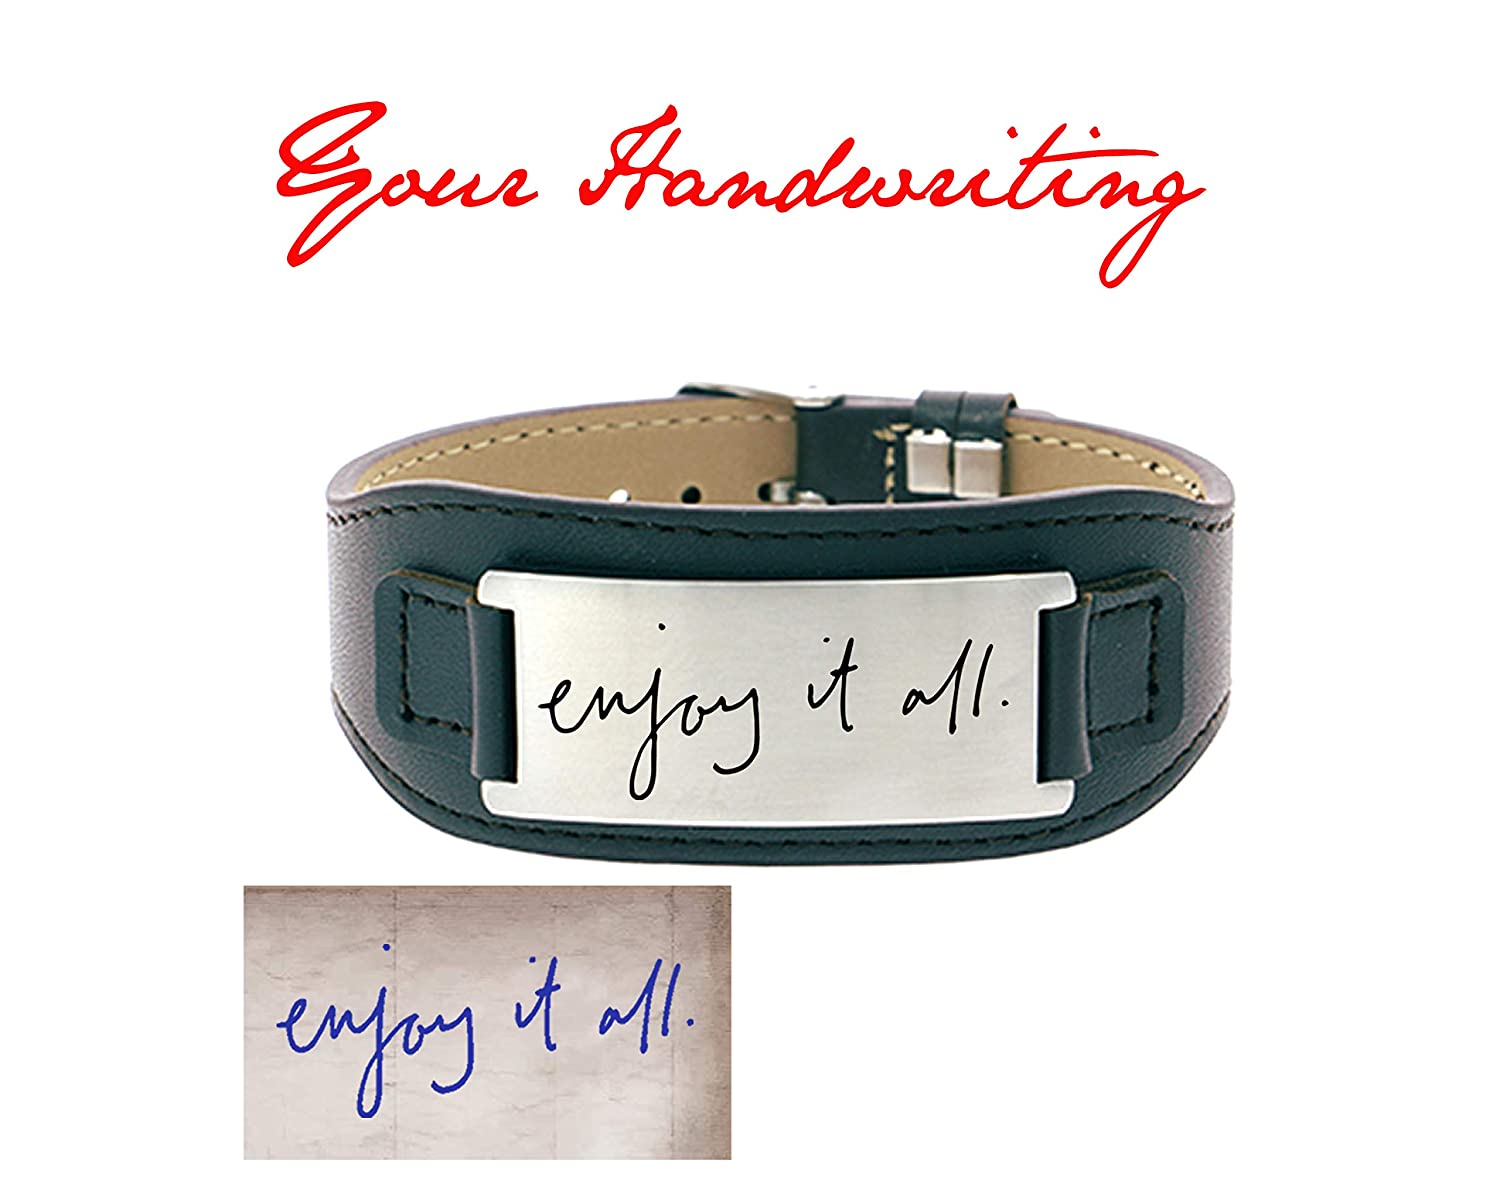 Kedar Custom Actual Handwriting Engraved Bracelet Signature Bracelet Personalized Real Handwritten Laser Engraved Leather Bracelet